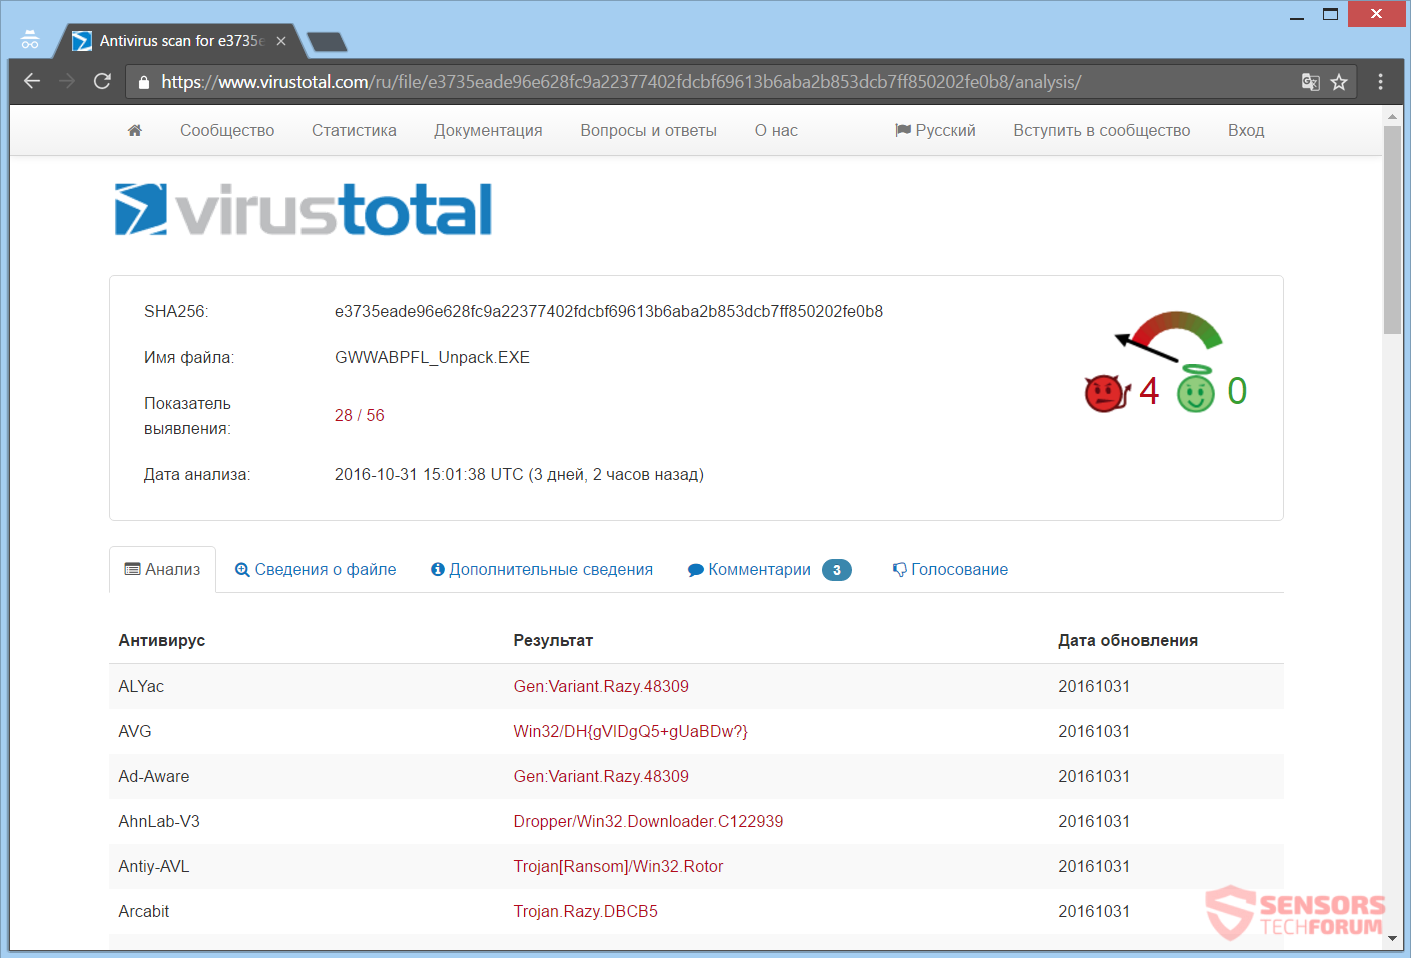 stf-rotorcrypt-ransomware-rotor-elizabeth7-protonmail-com-likbez77777-gmail-com-virus-total-analysis-exe-detections